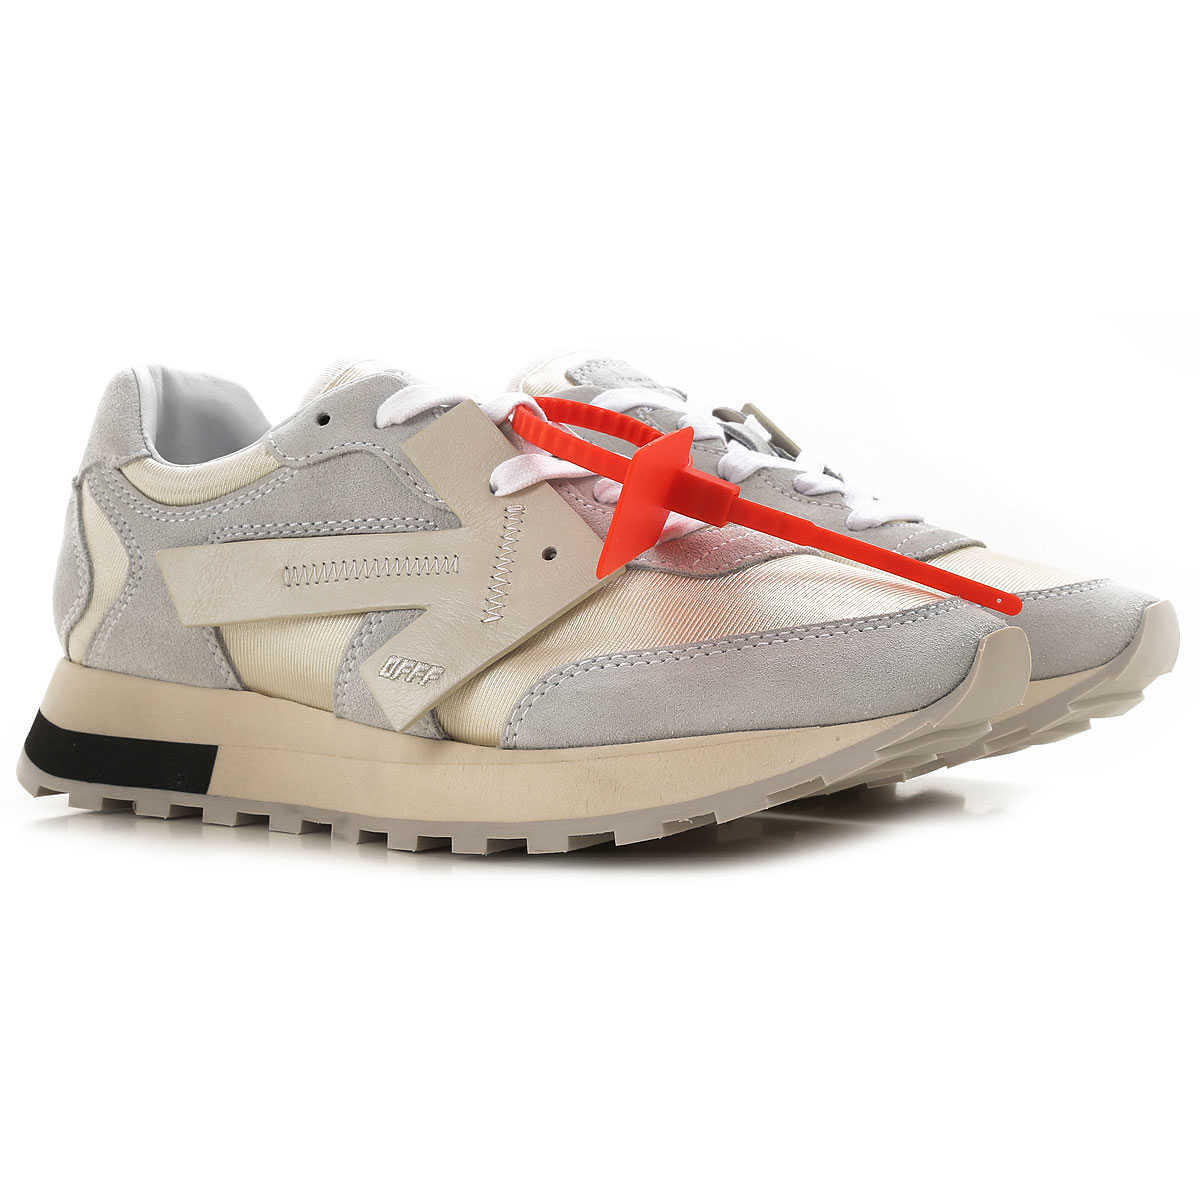 Off-White Virgil Abloh Sneakers for Women On Sale Off-White - GOOFASH